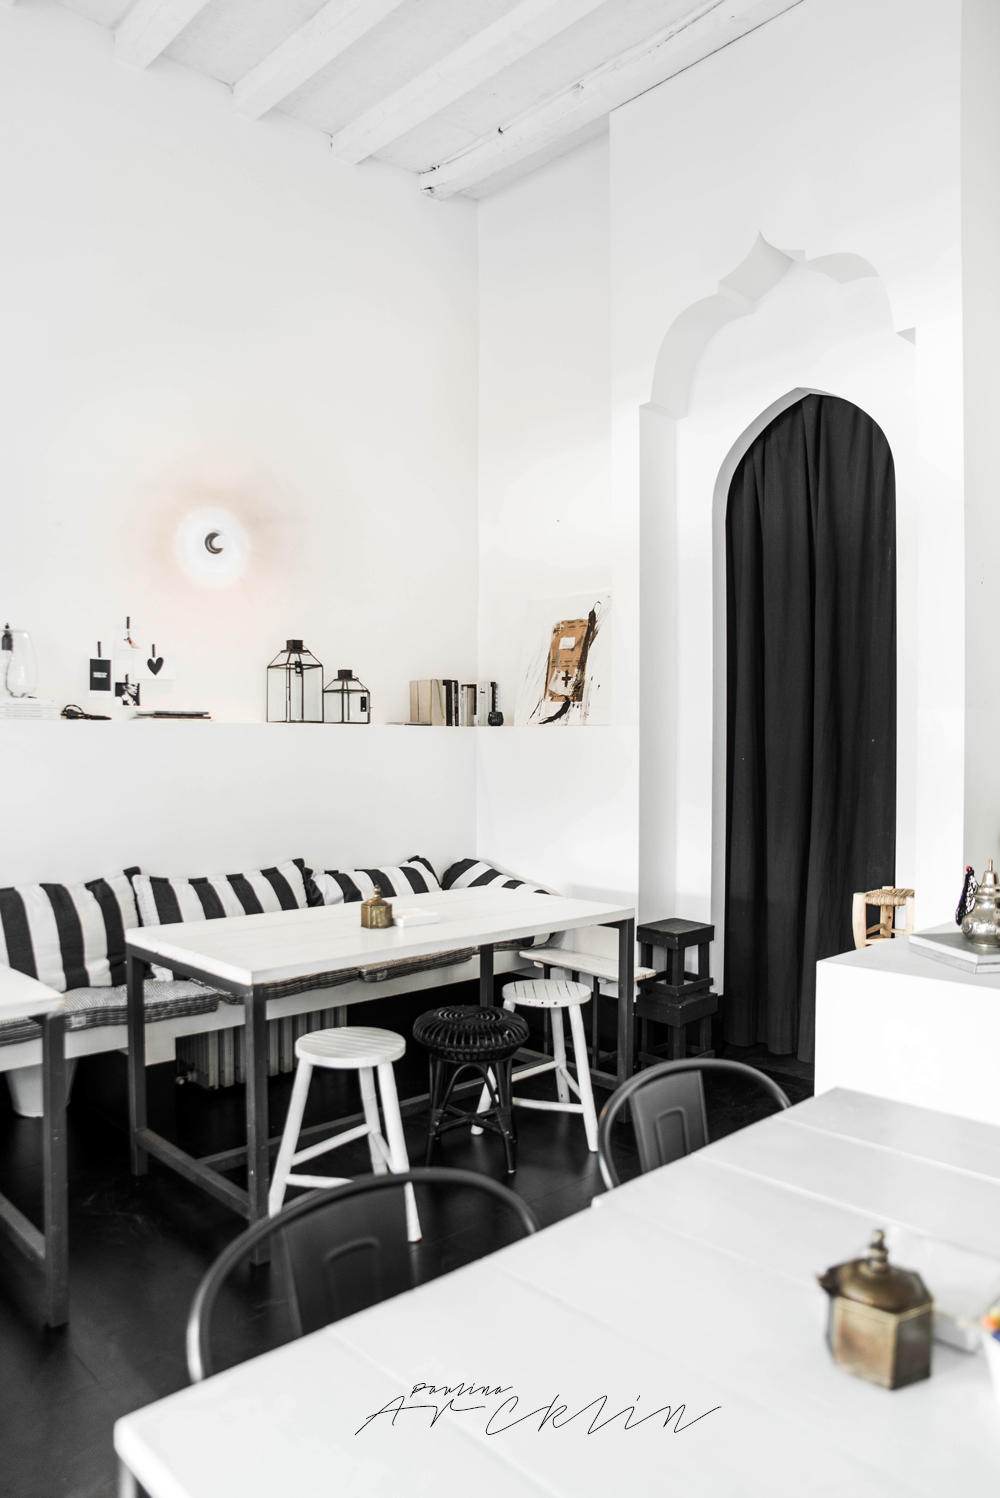 design restaurant in milan, italian interiors, italian interior design, italian design restaurant, paulina arcklin, riad food garden , black white restaurant design, ethnic chic, ethnic scandinavian, scandi boho, scandinavian style restaurant, tine k home, black white decor